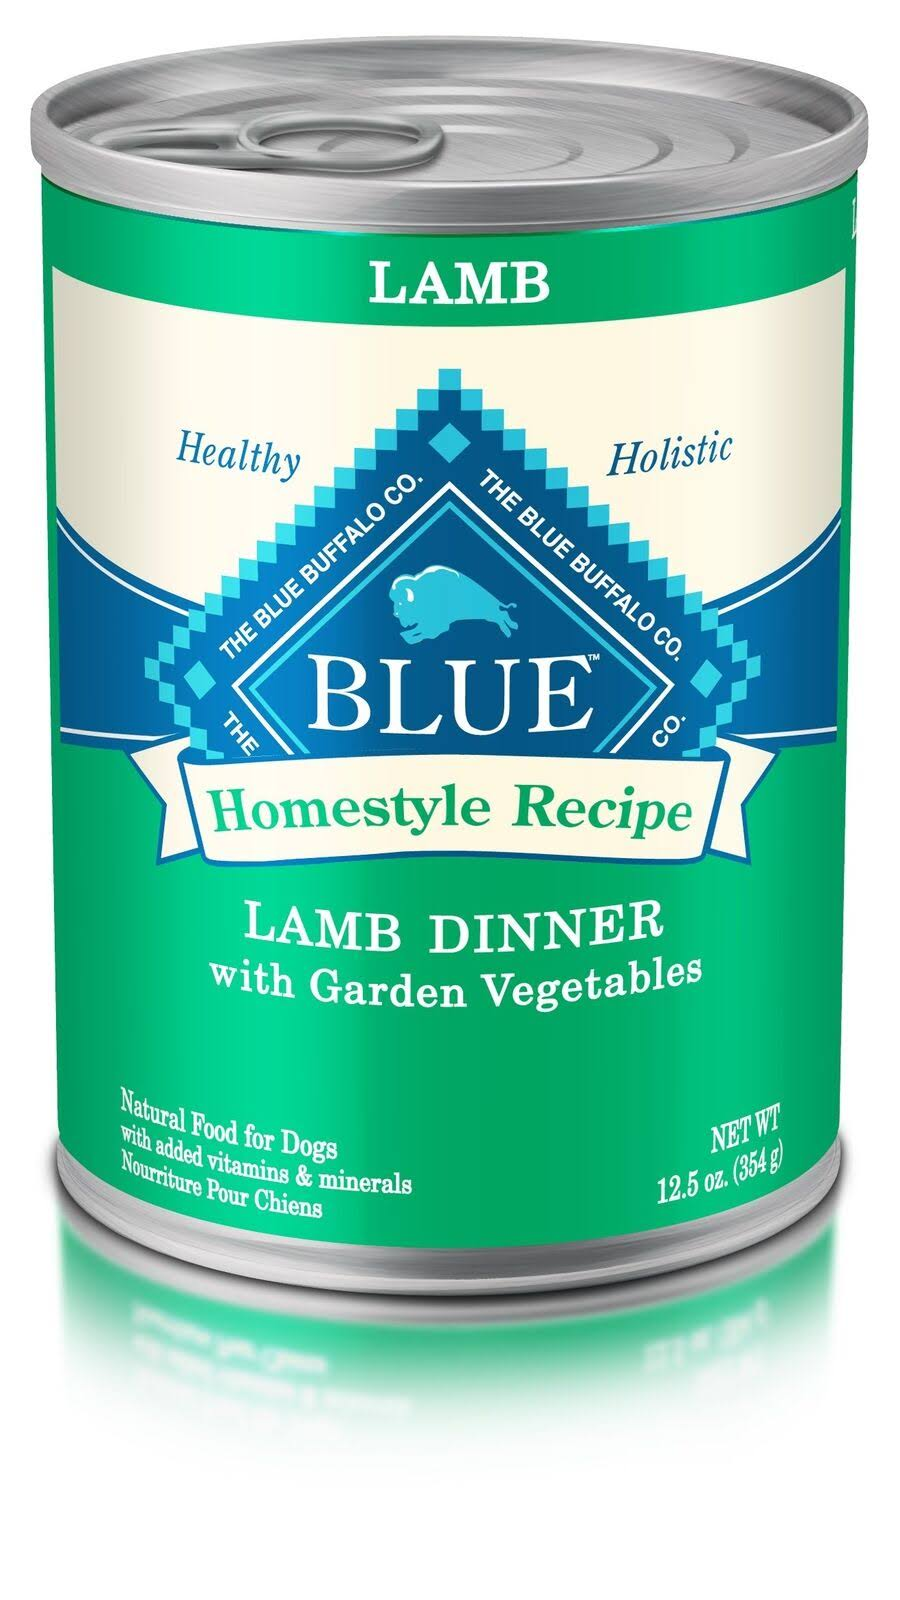 Blue Buffalo Canned Dog Food - Lamb and Vegetables, 12.5oz